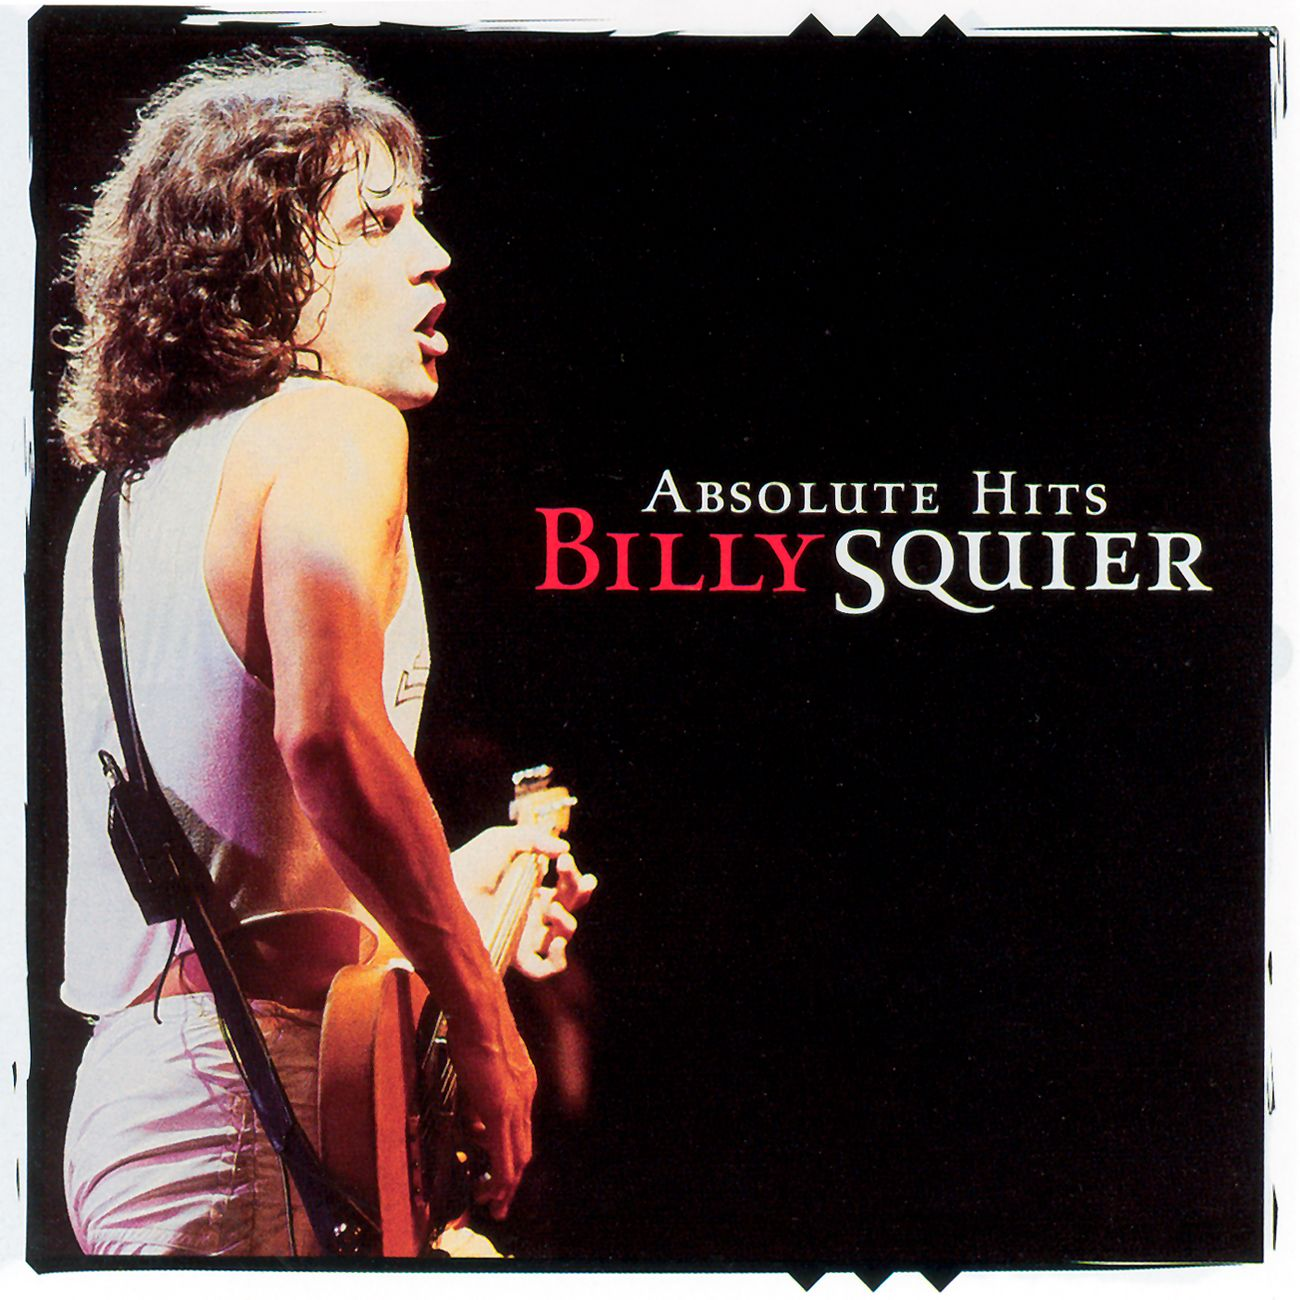 billy squier radio listen to free music get the latest info iheartradio - Billy Squier Christmas Song